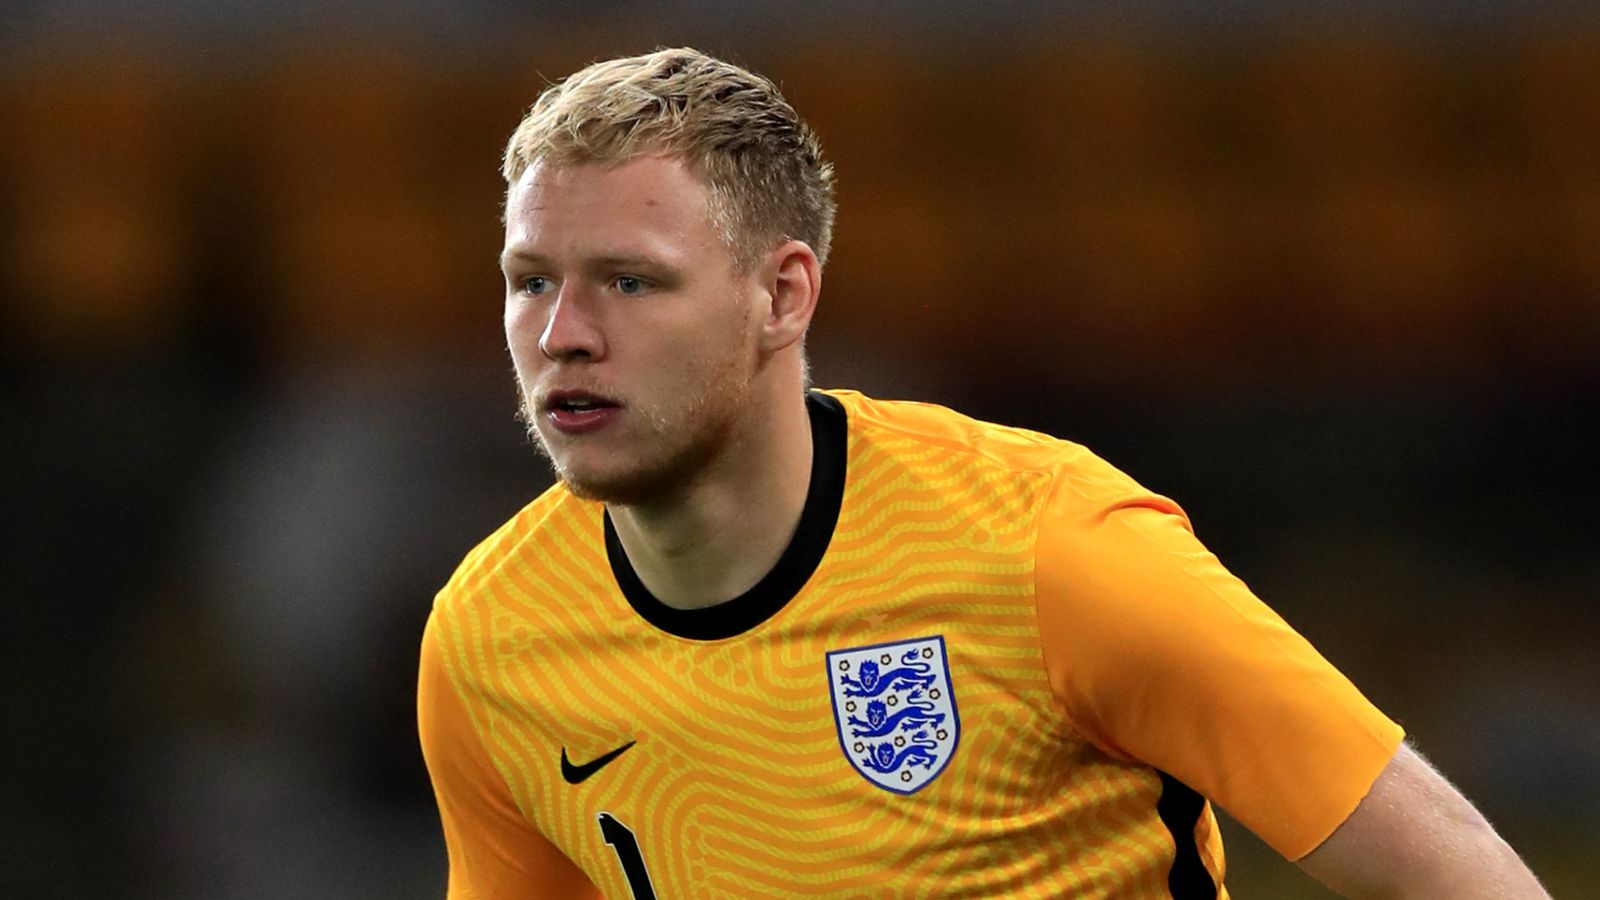 Aaron Ramsdale: Arsenal interested in signing Sheffield United goalkeeper